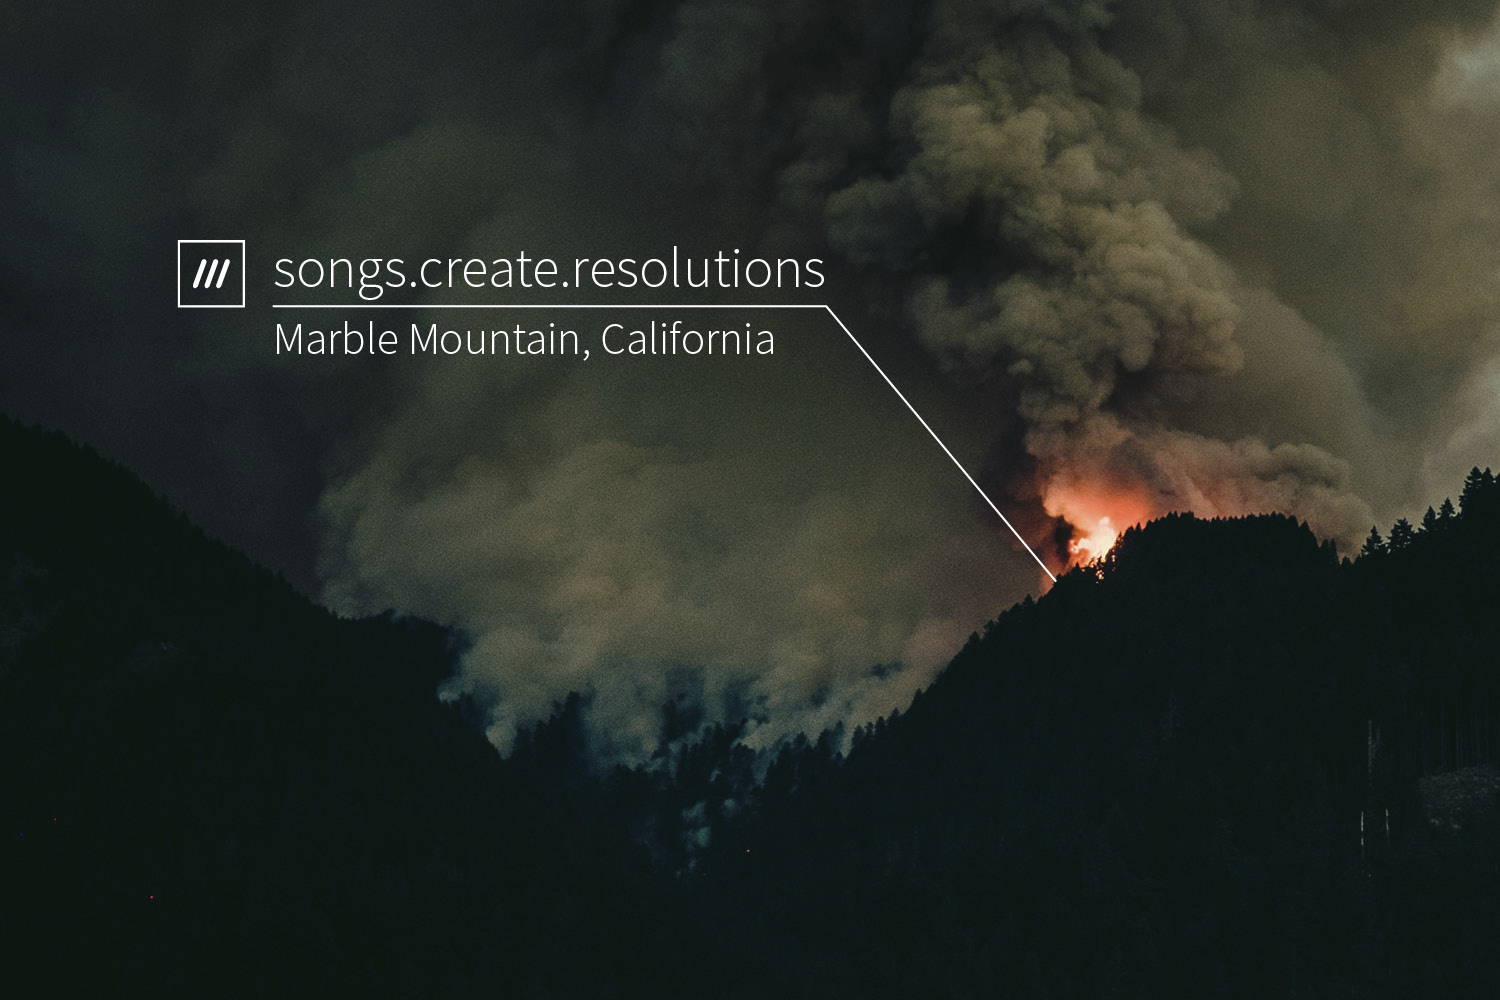 Forest fire at night at 3 word location songs.create.resolutions